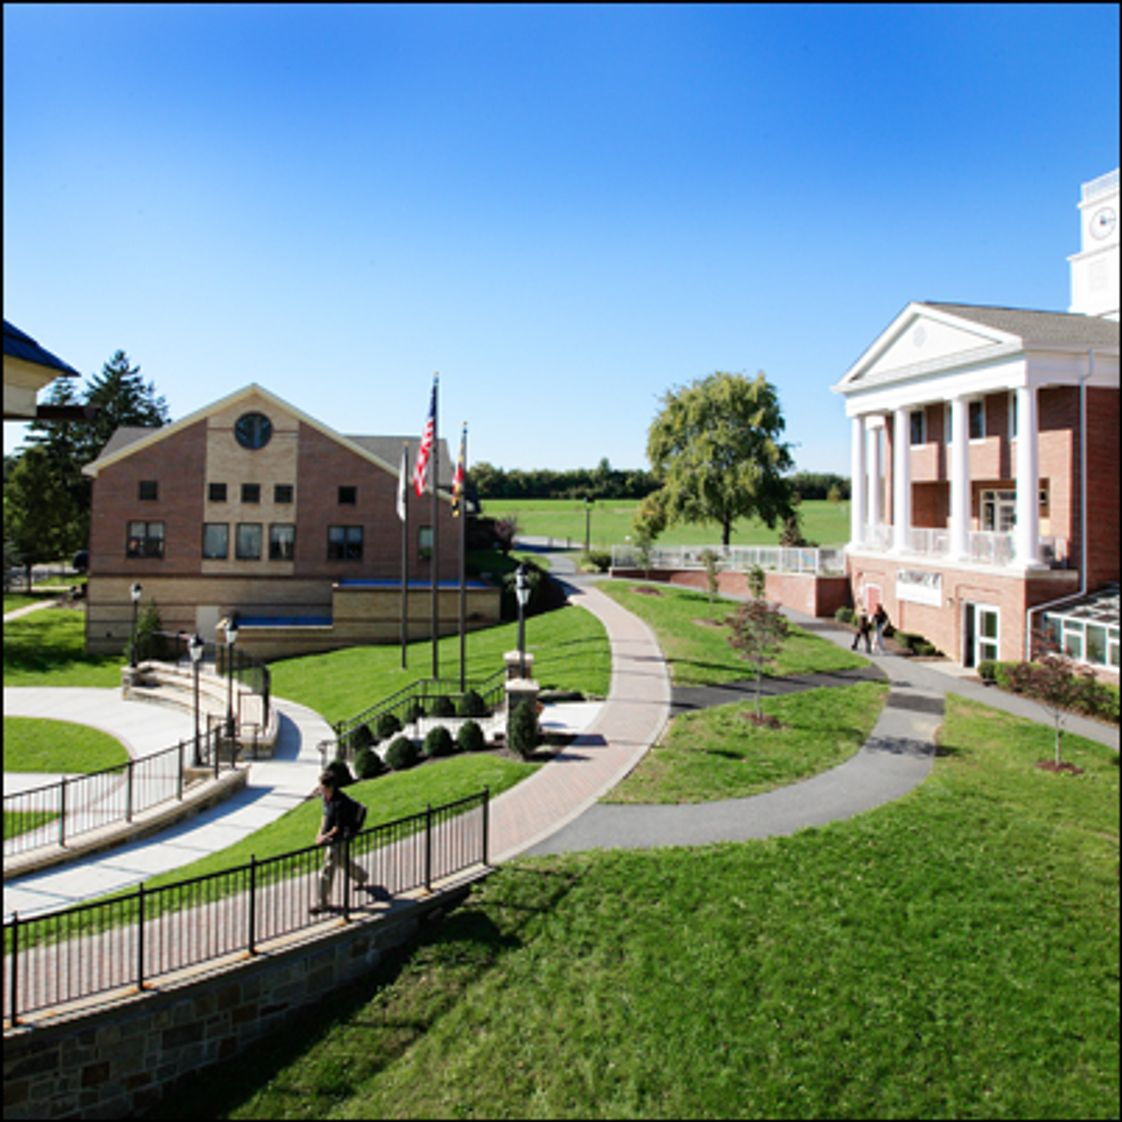 West Nottingham Academy Photo - Our 120-acre campus is just an hour's drive from Baltimore or Philadelphia and 25 minutes from the Univ. of Delaware's campus - all perfect for weekend activities and cultural events.